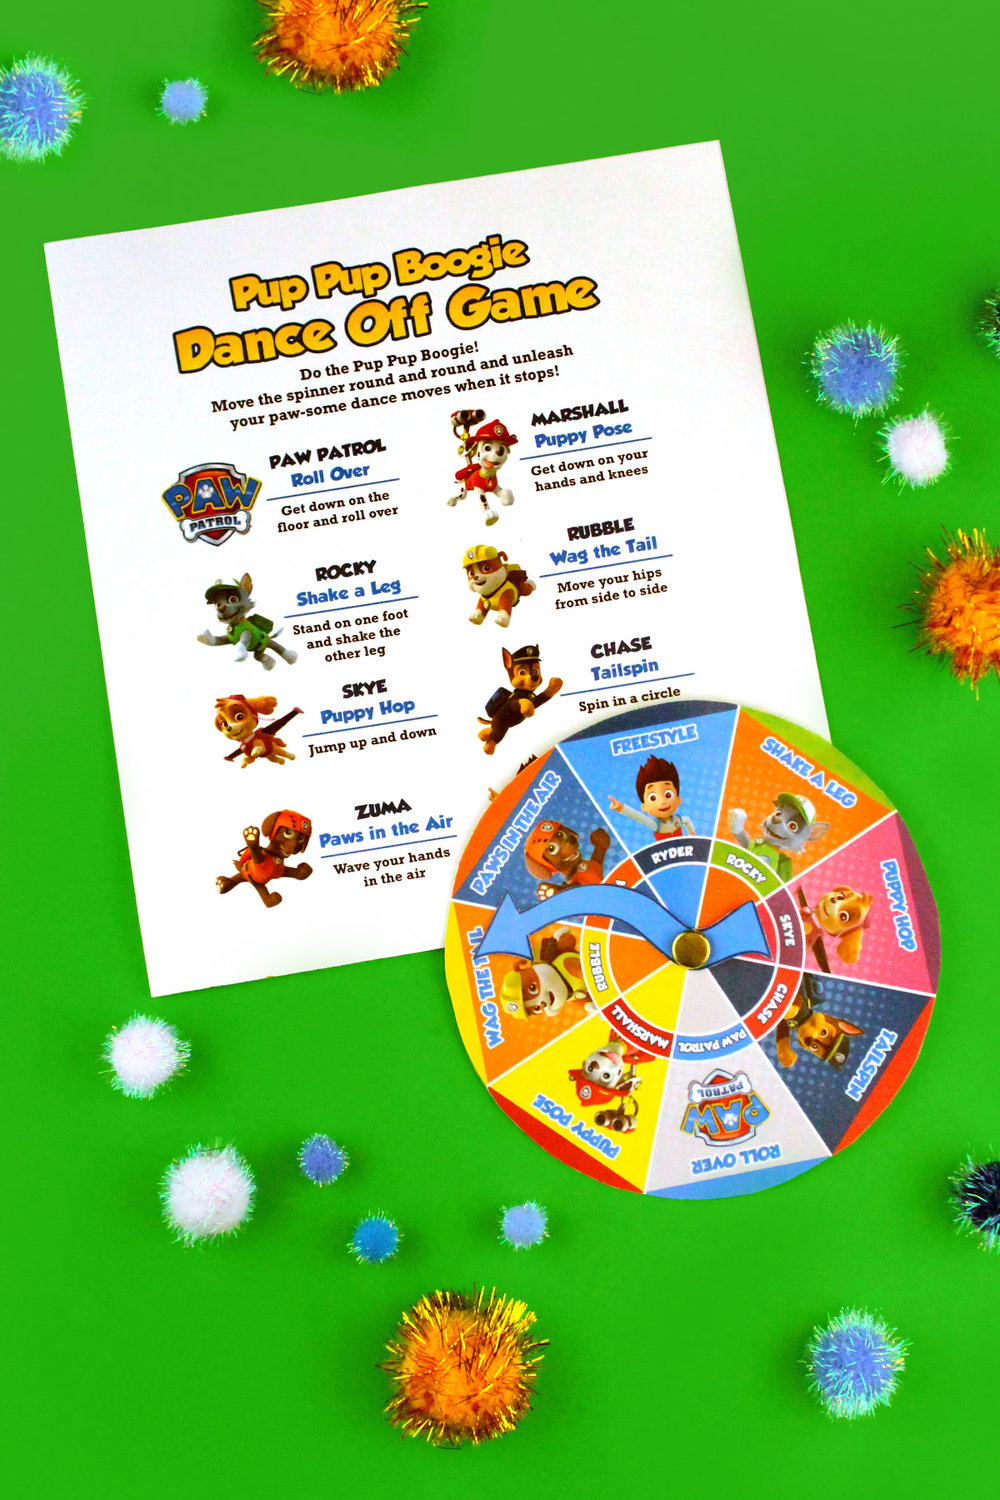 Pup Pup Boogie game from Wonder Kids